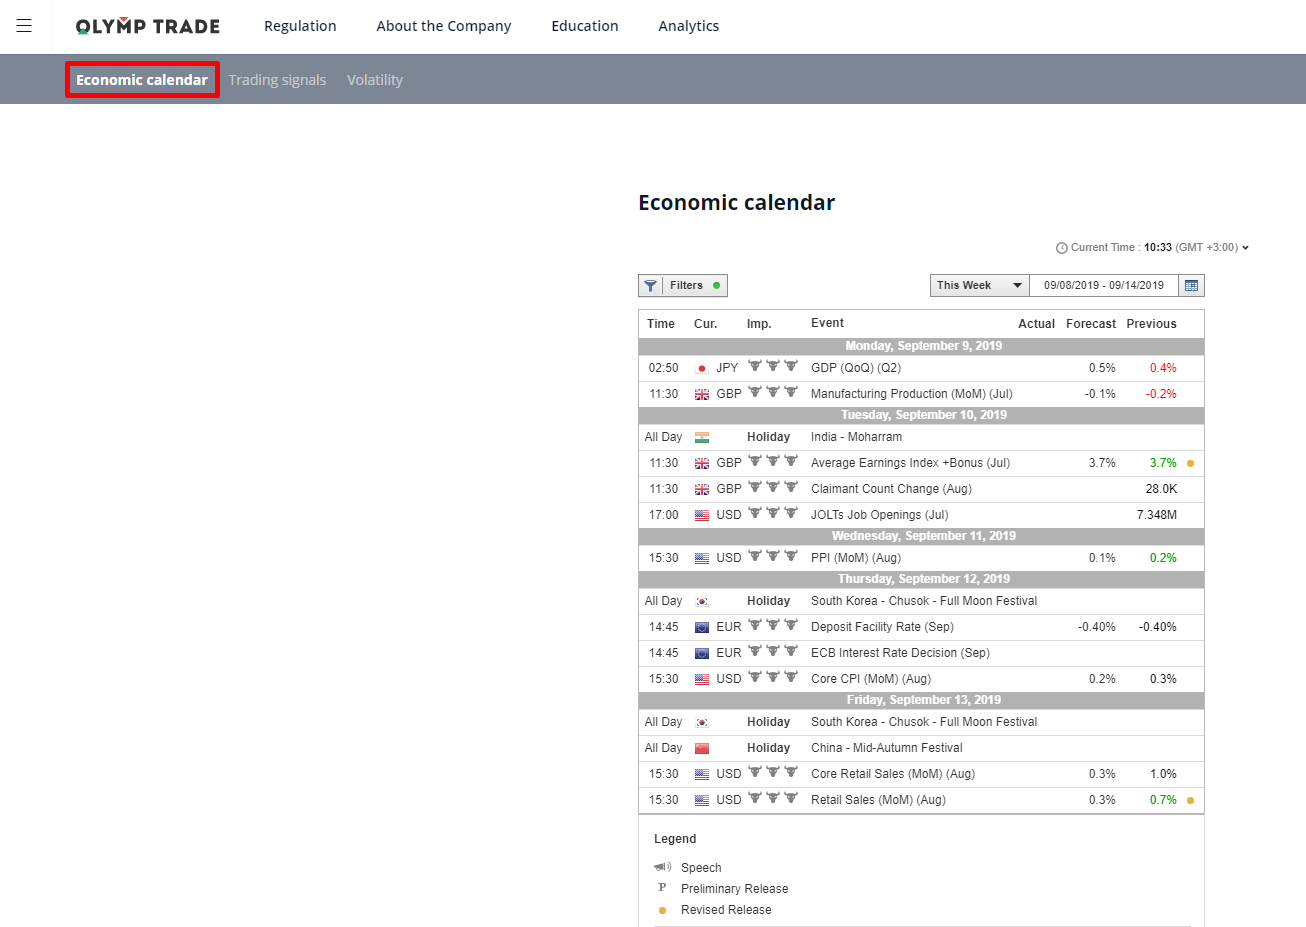 What Is The Economic Calendar And What Is It For?  Official pertaining to Olymp Trade Economic Calendar